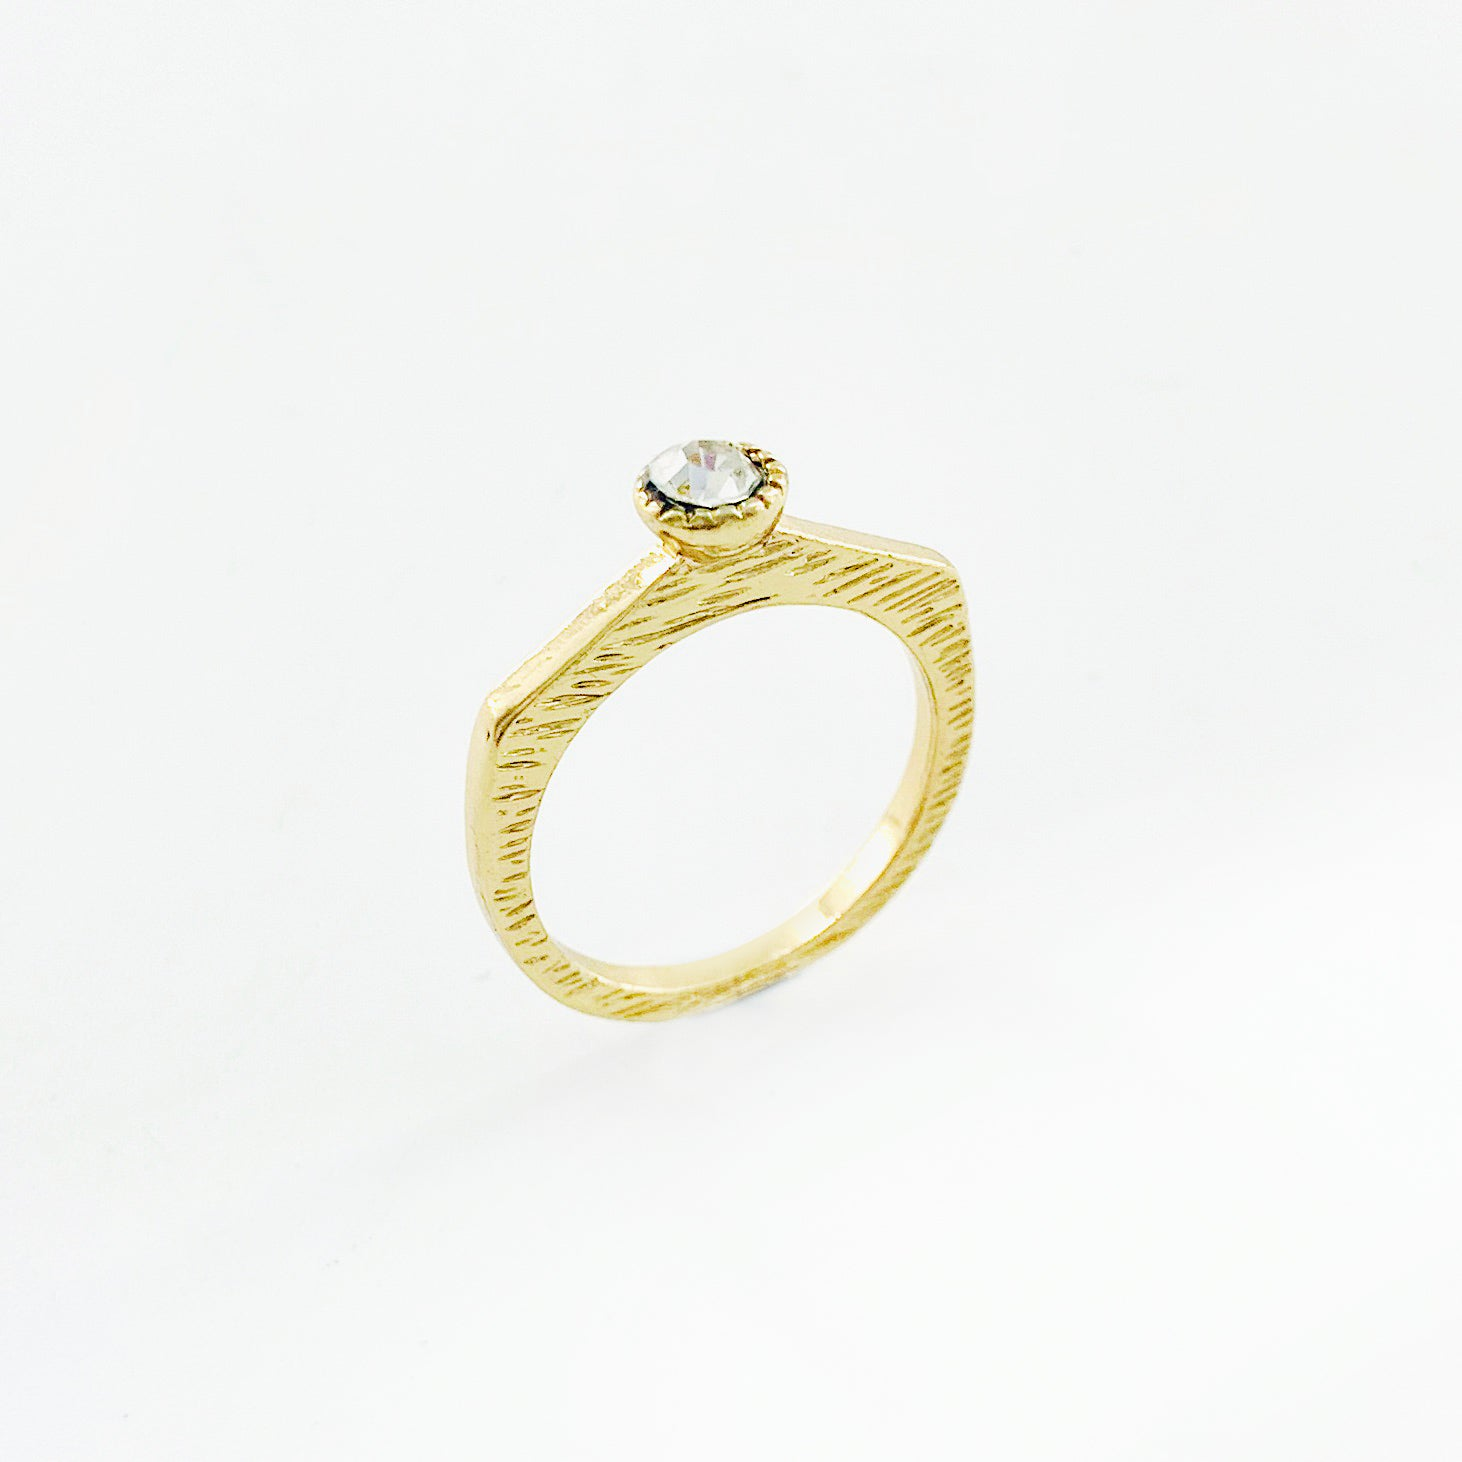 Textured gold ring with small white stone